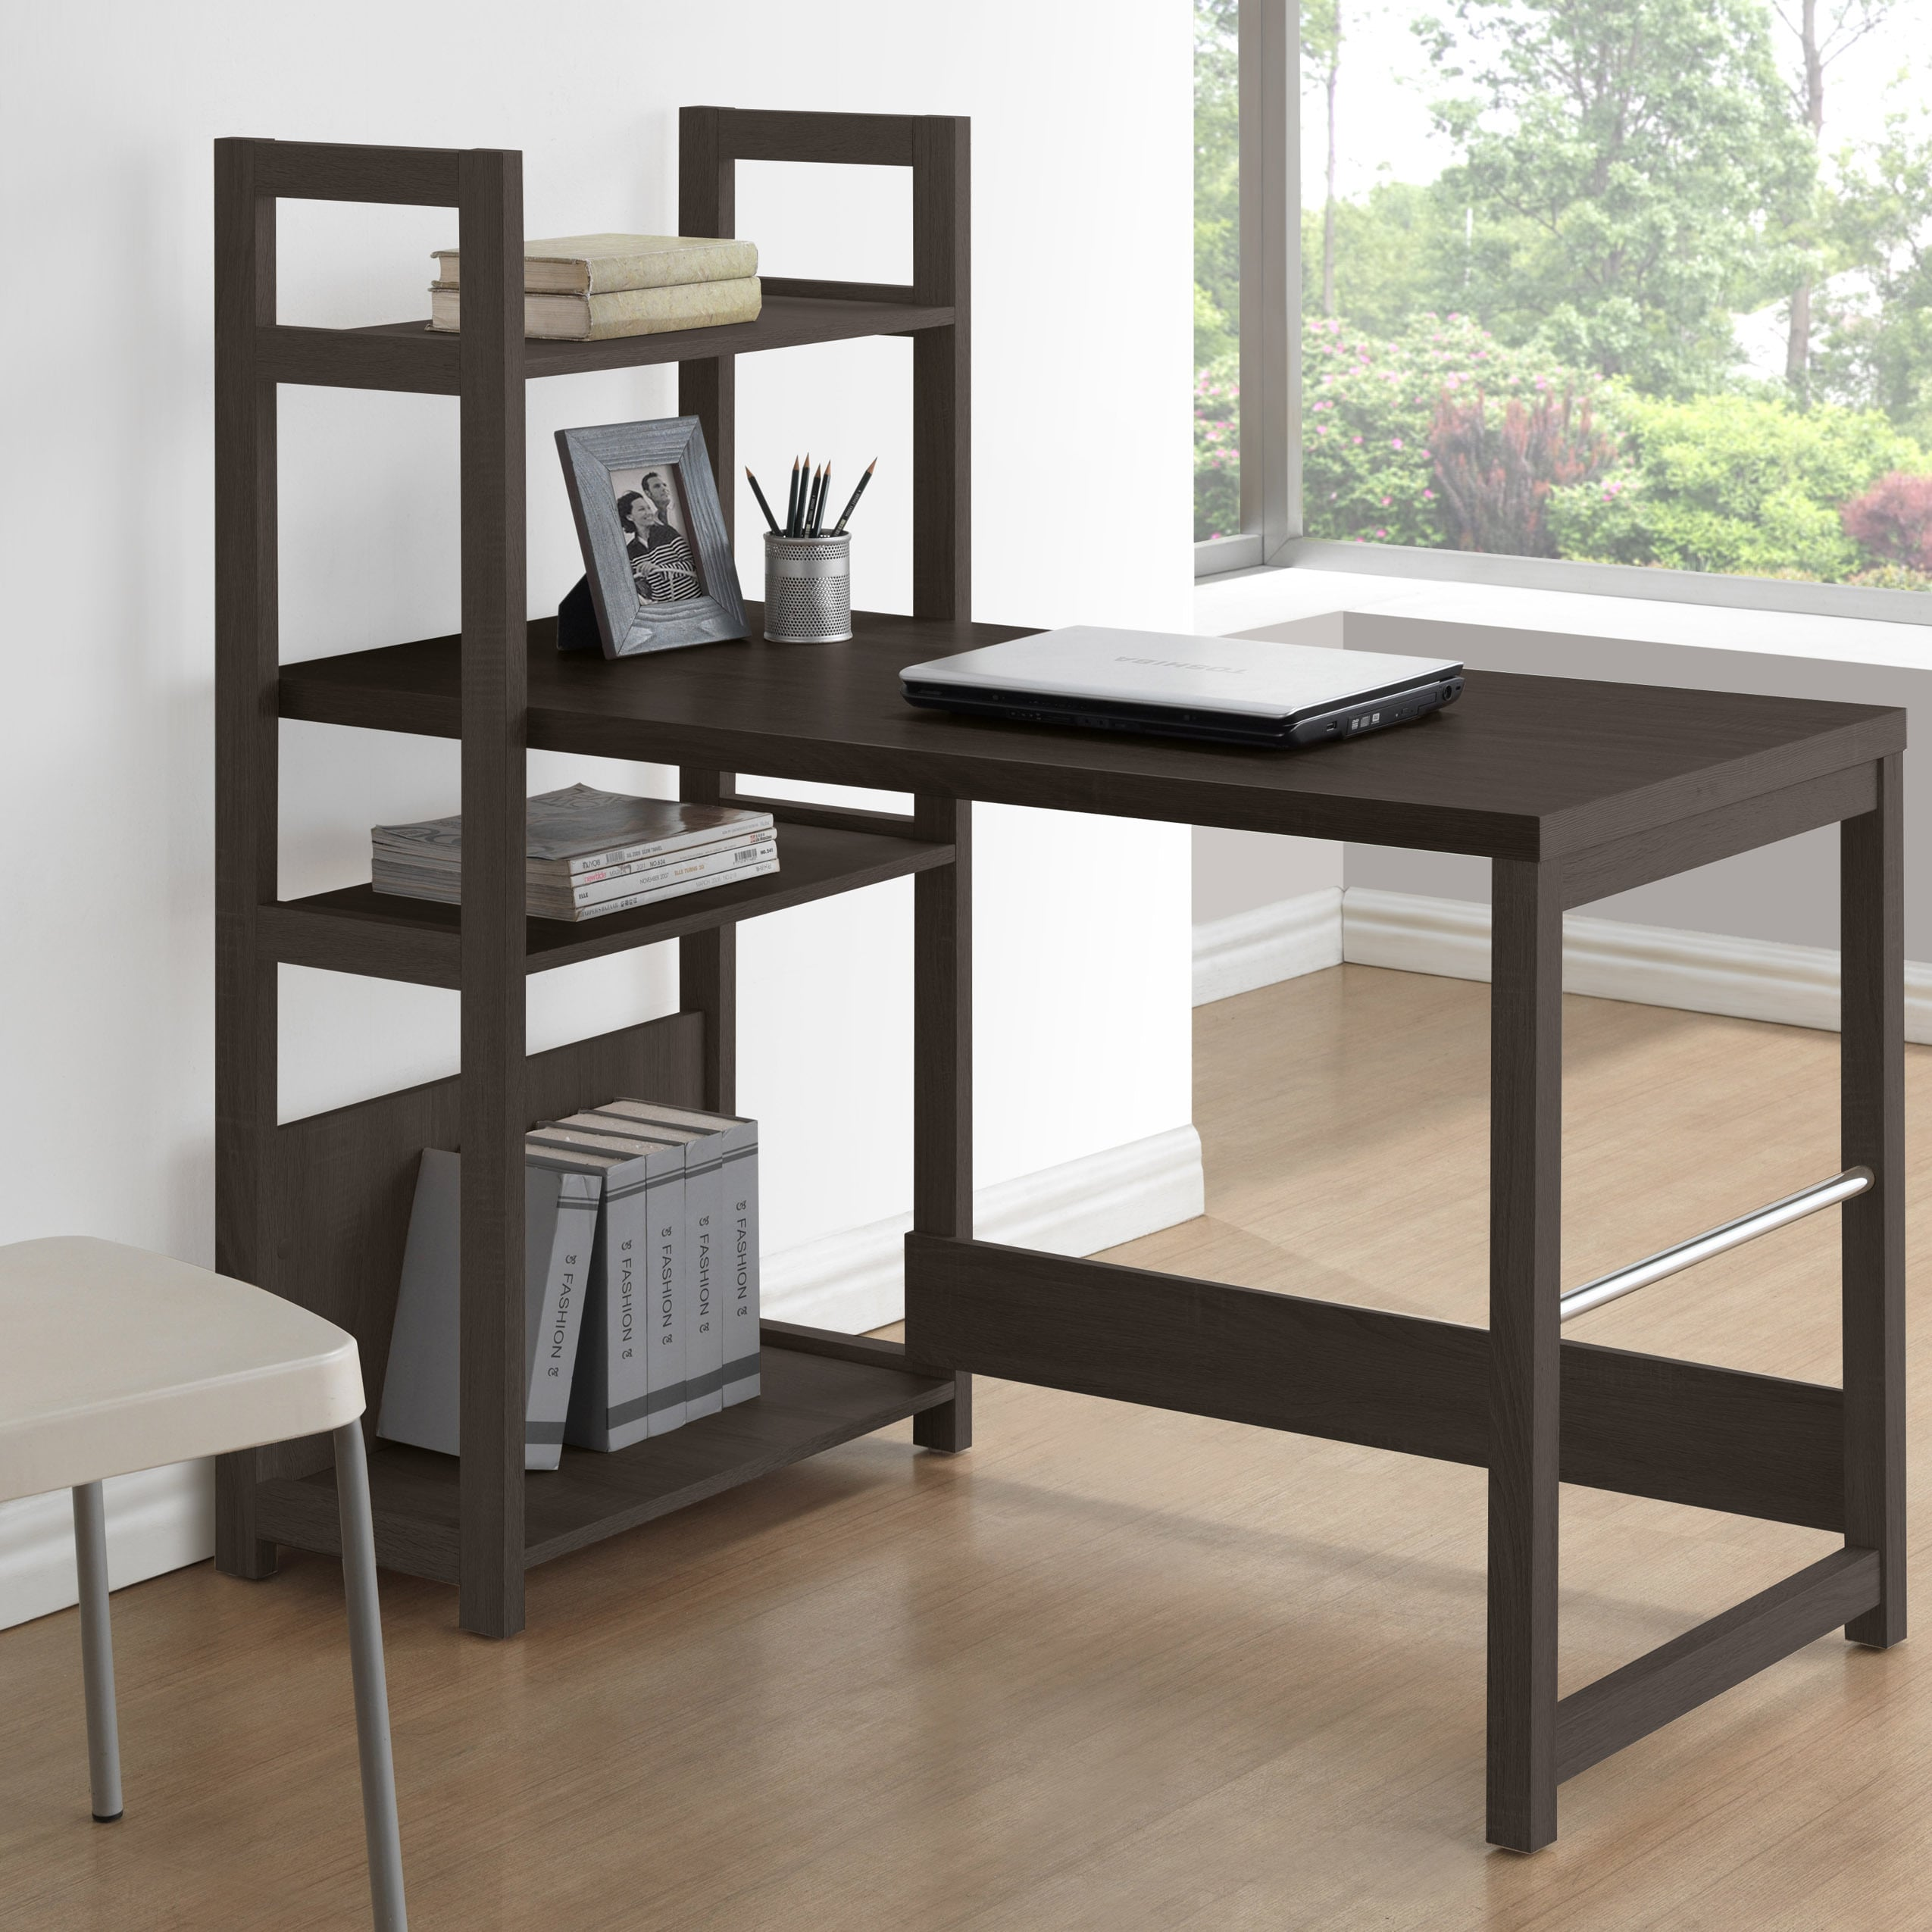 Shop CorLiving Folio Black Espresso Bookshelf Styled Desk